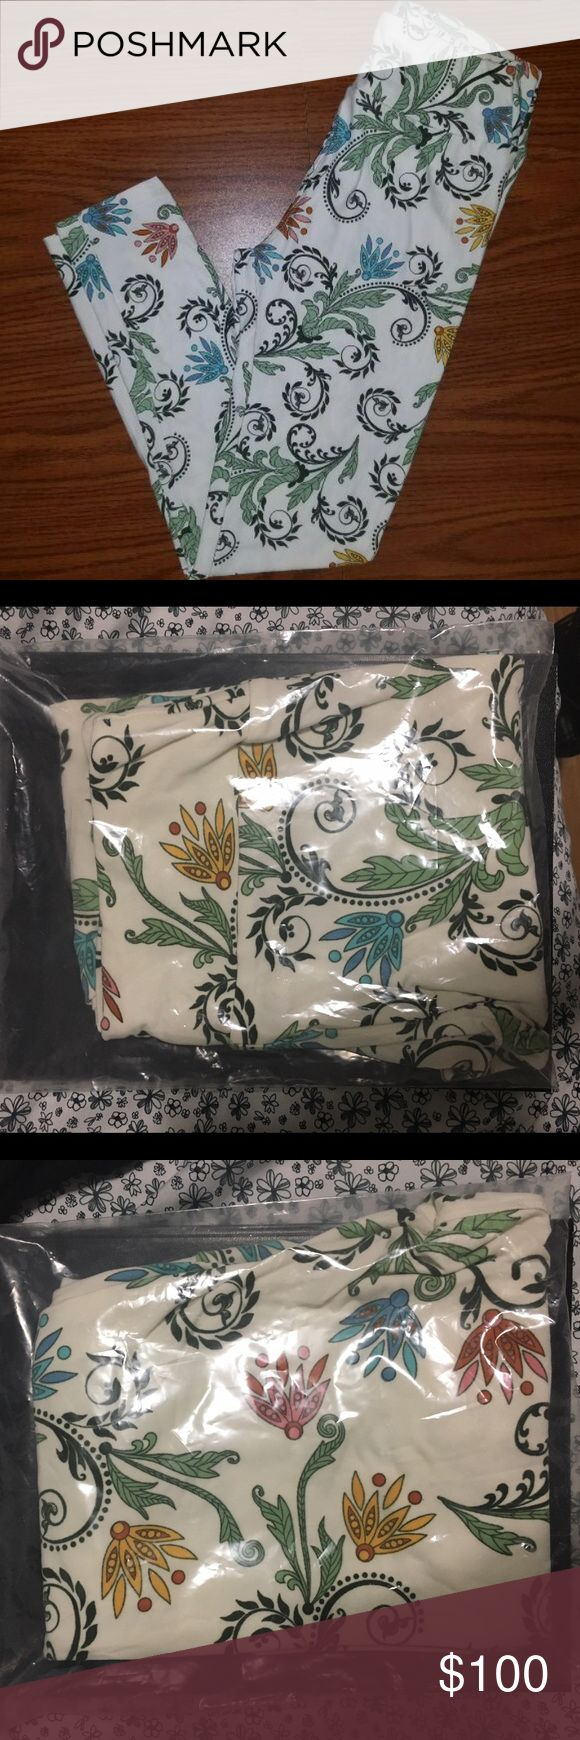 LuLaRoe UNICORN MAJOR UNICORN PRINT! Brand new LuLaRoe Os leggings made in Indonesia. Cream leggings with with dark olive green paisley and blue, pink, yellow floral. Brand new. Never worn, never tried on. LuLaRoe Pants Leggings